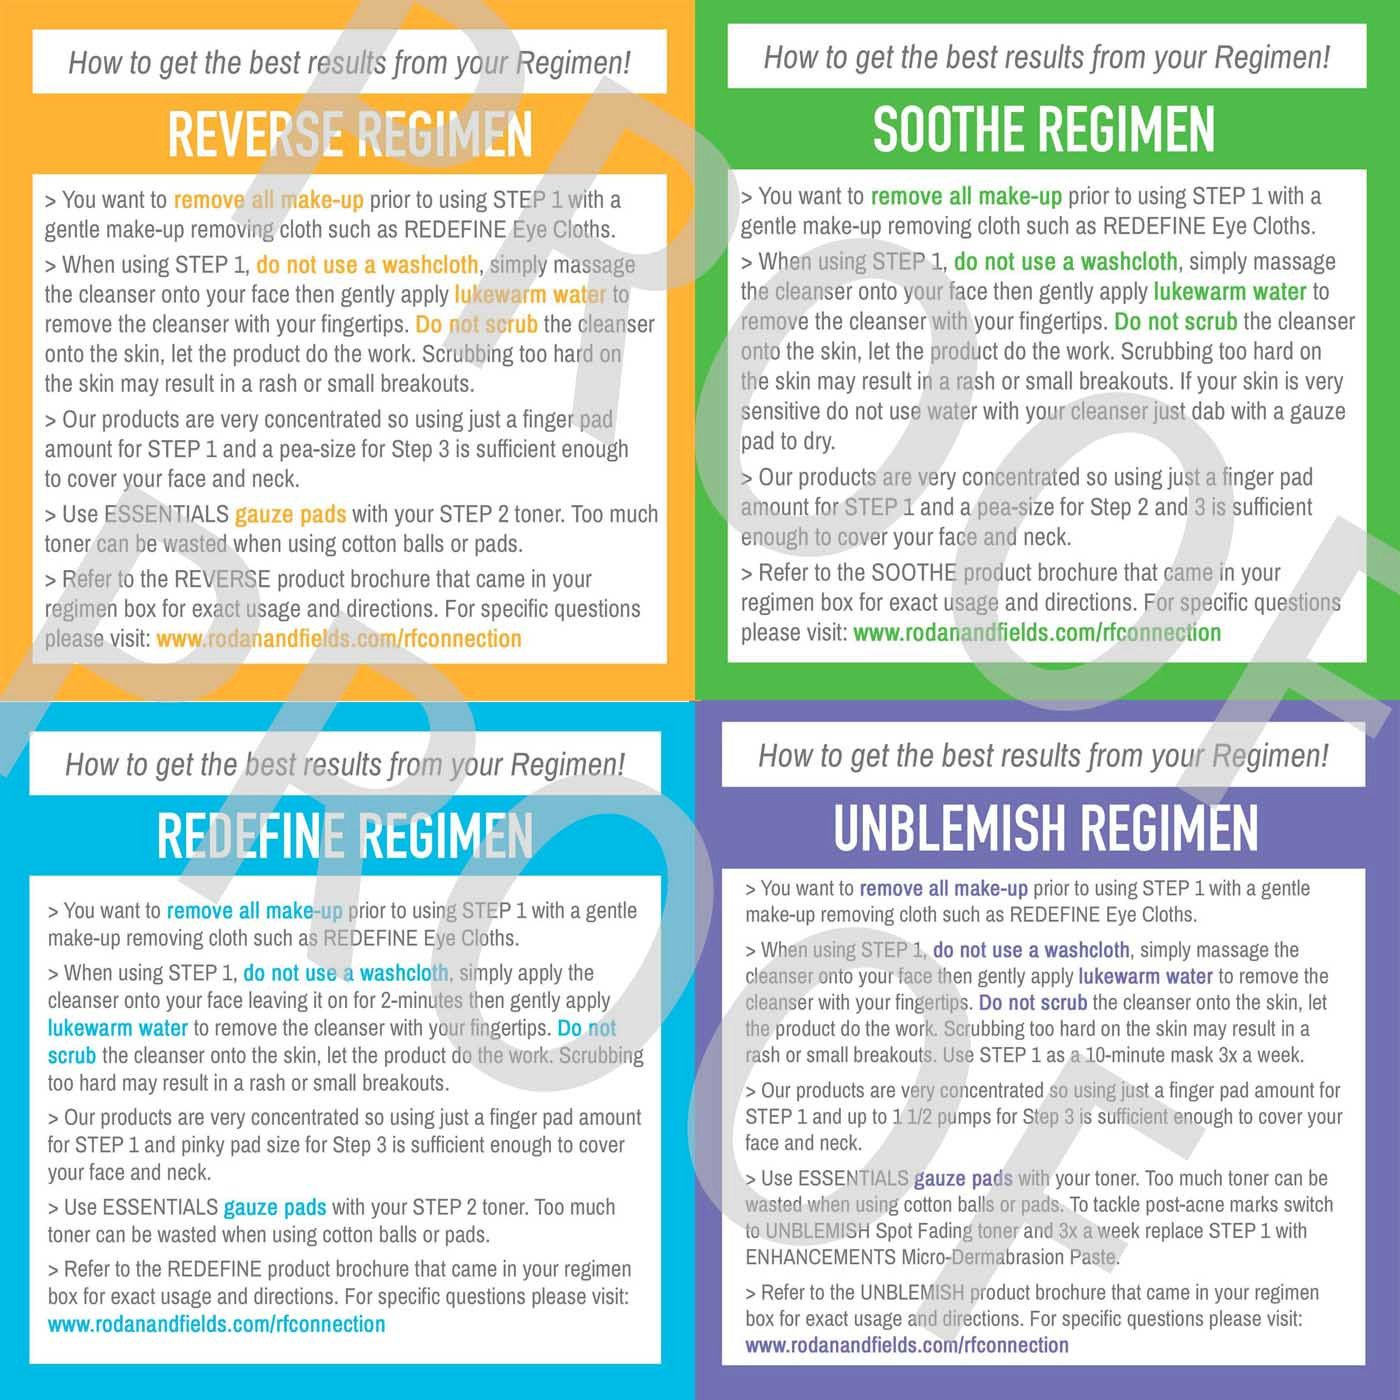 PRINTED REGIMEN TIPS Cards for your skincare business! | 4"|1400|1400|?|43a2ff9c4cd0d6c6800039efa044c0ef|False|UNLIKELY|0.33389443159103394